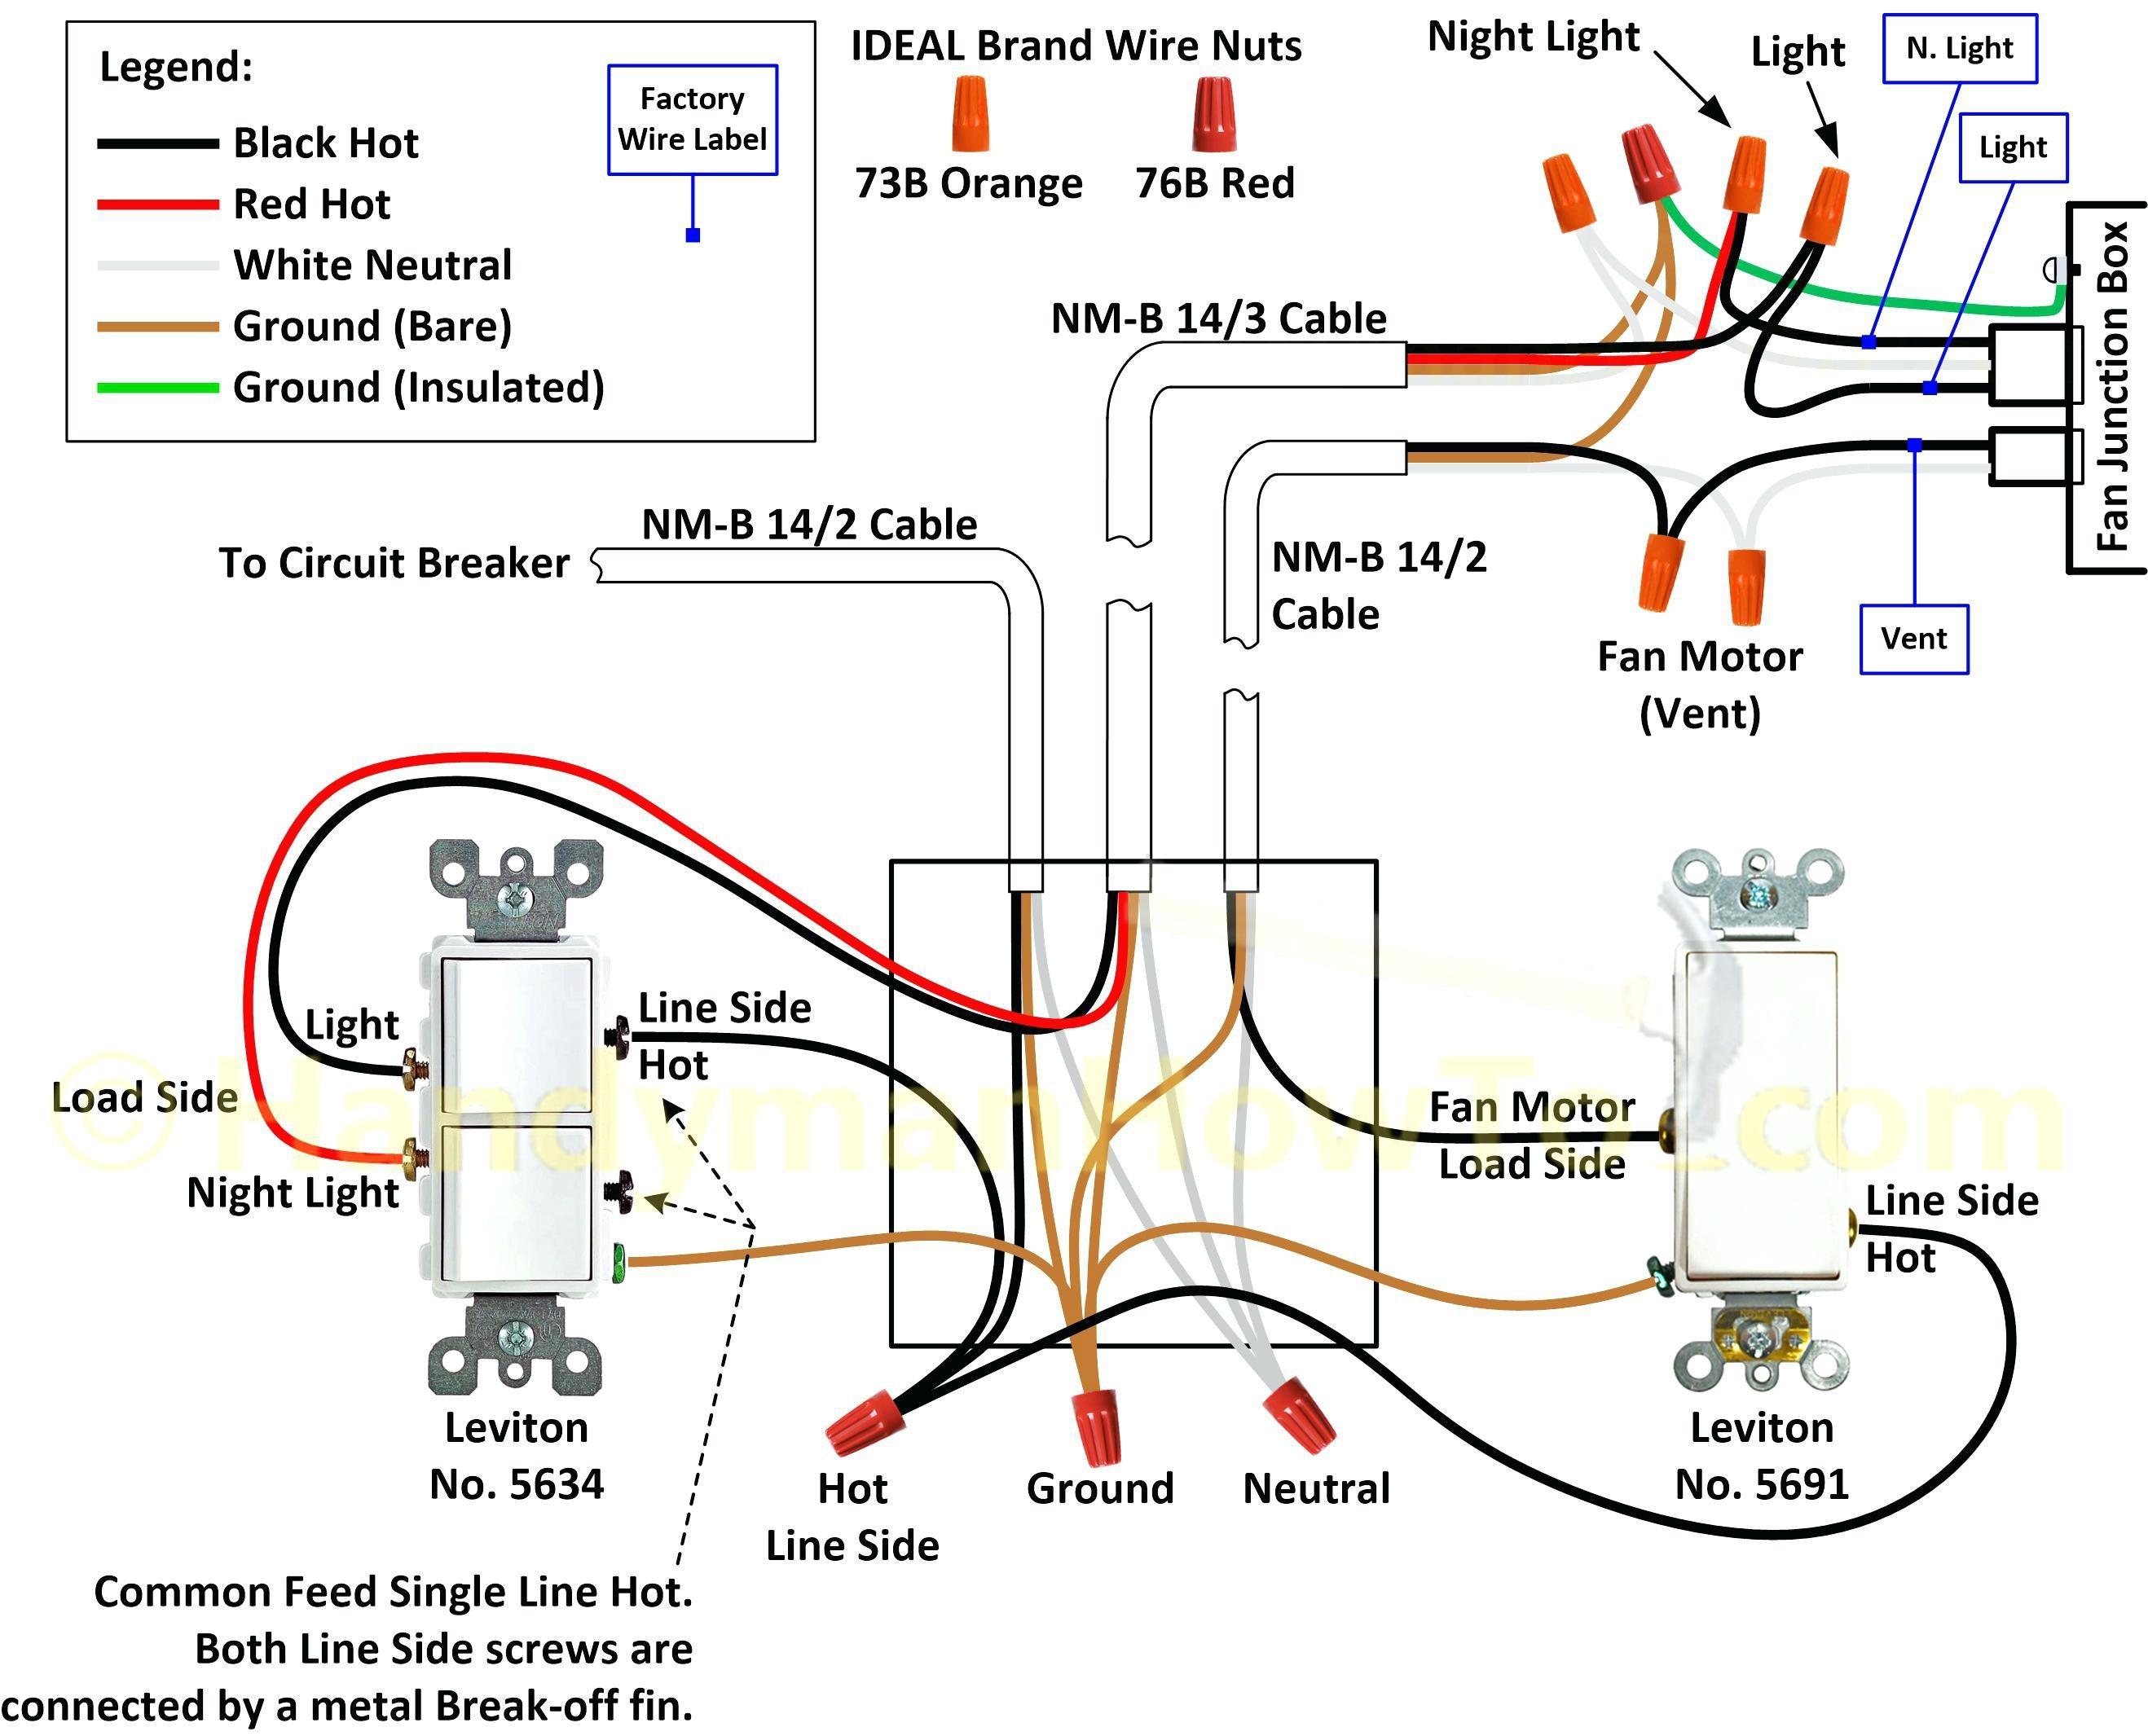 1994 S10 Wiring Diagram Stop Light Free Vehicle Diagrams Chevy Blazer Brake Wire Center U2022 Rh Uxudesign Co